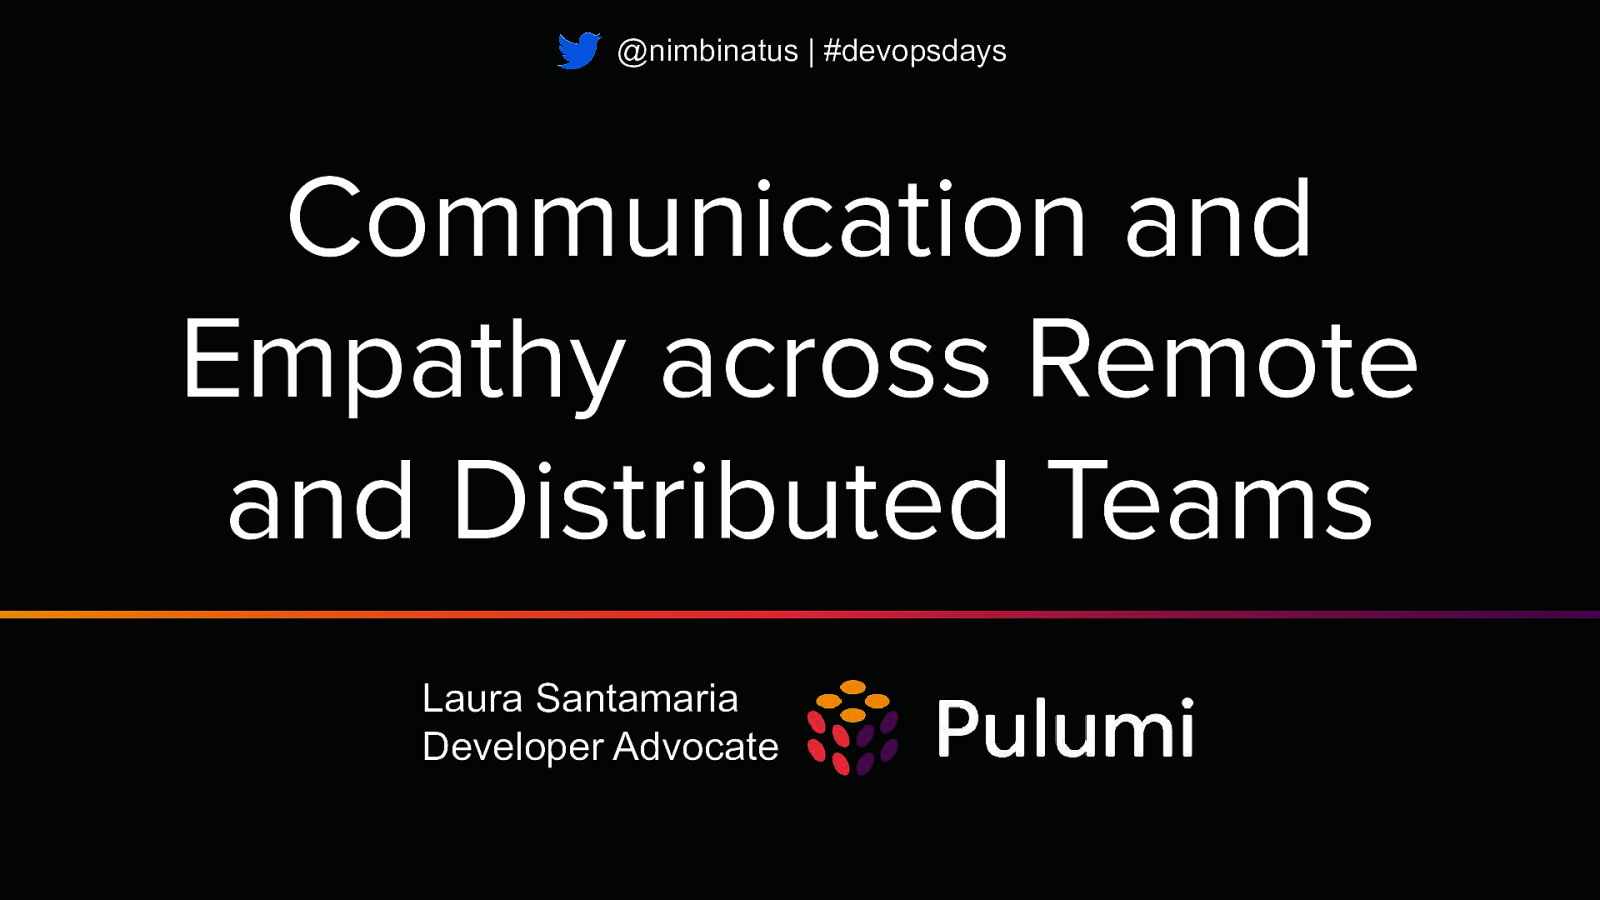 Communication and Empathy across Remote and Distributed Teams